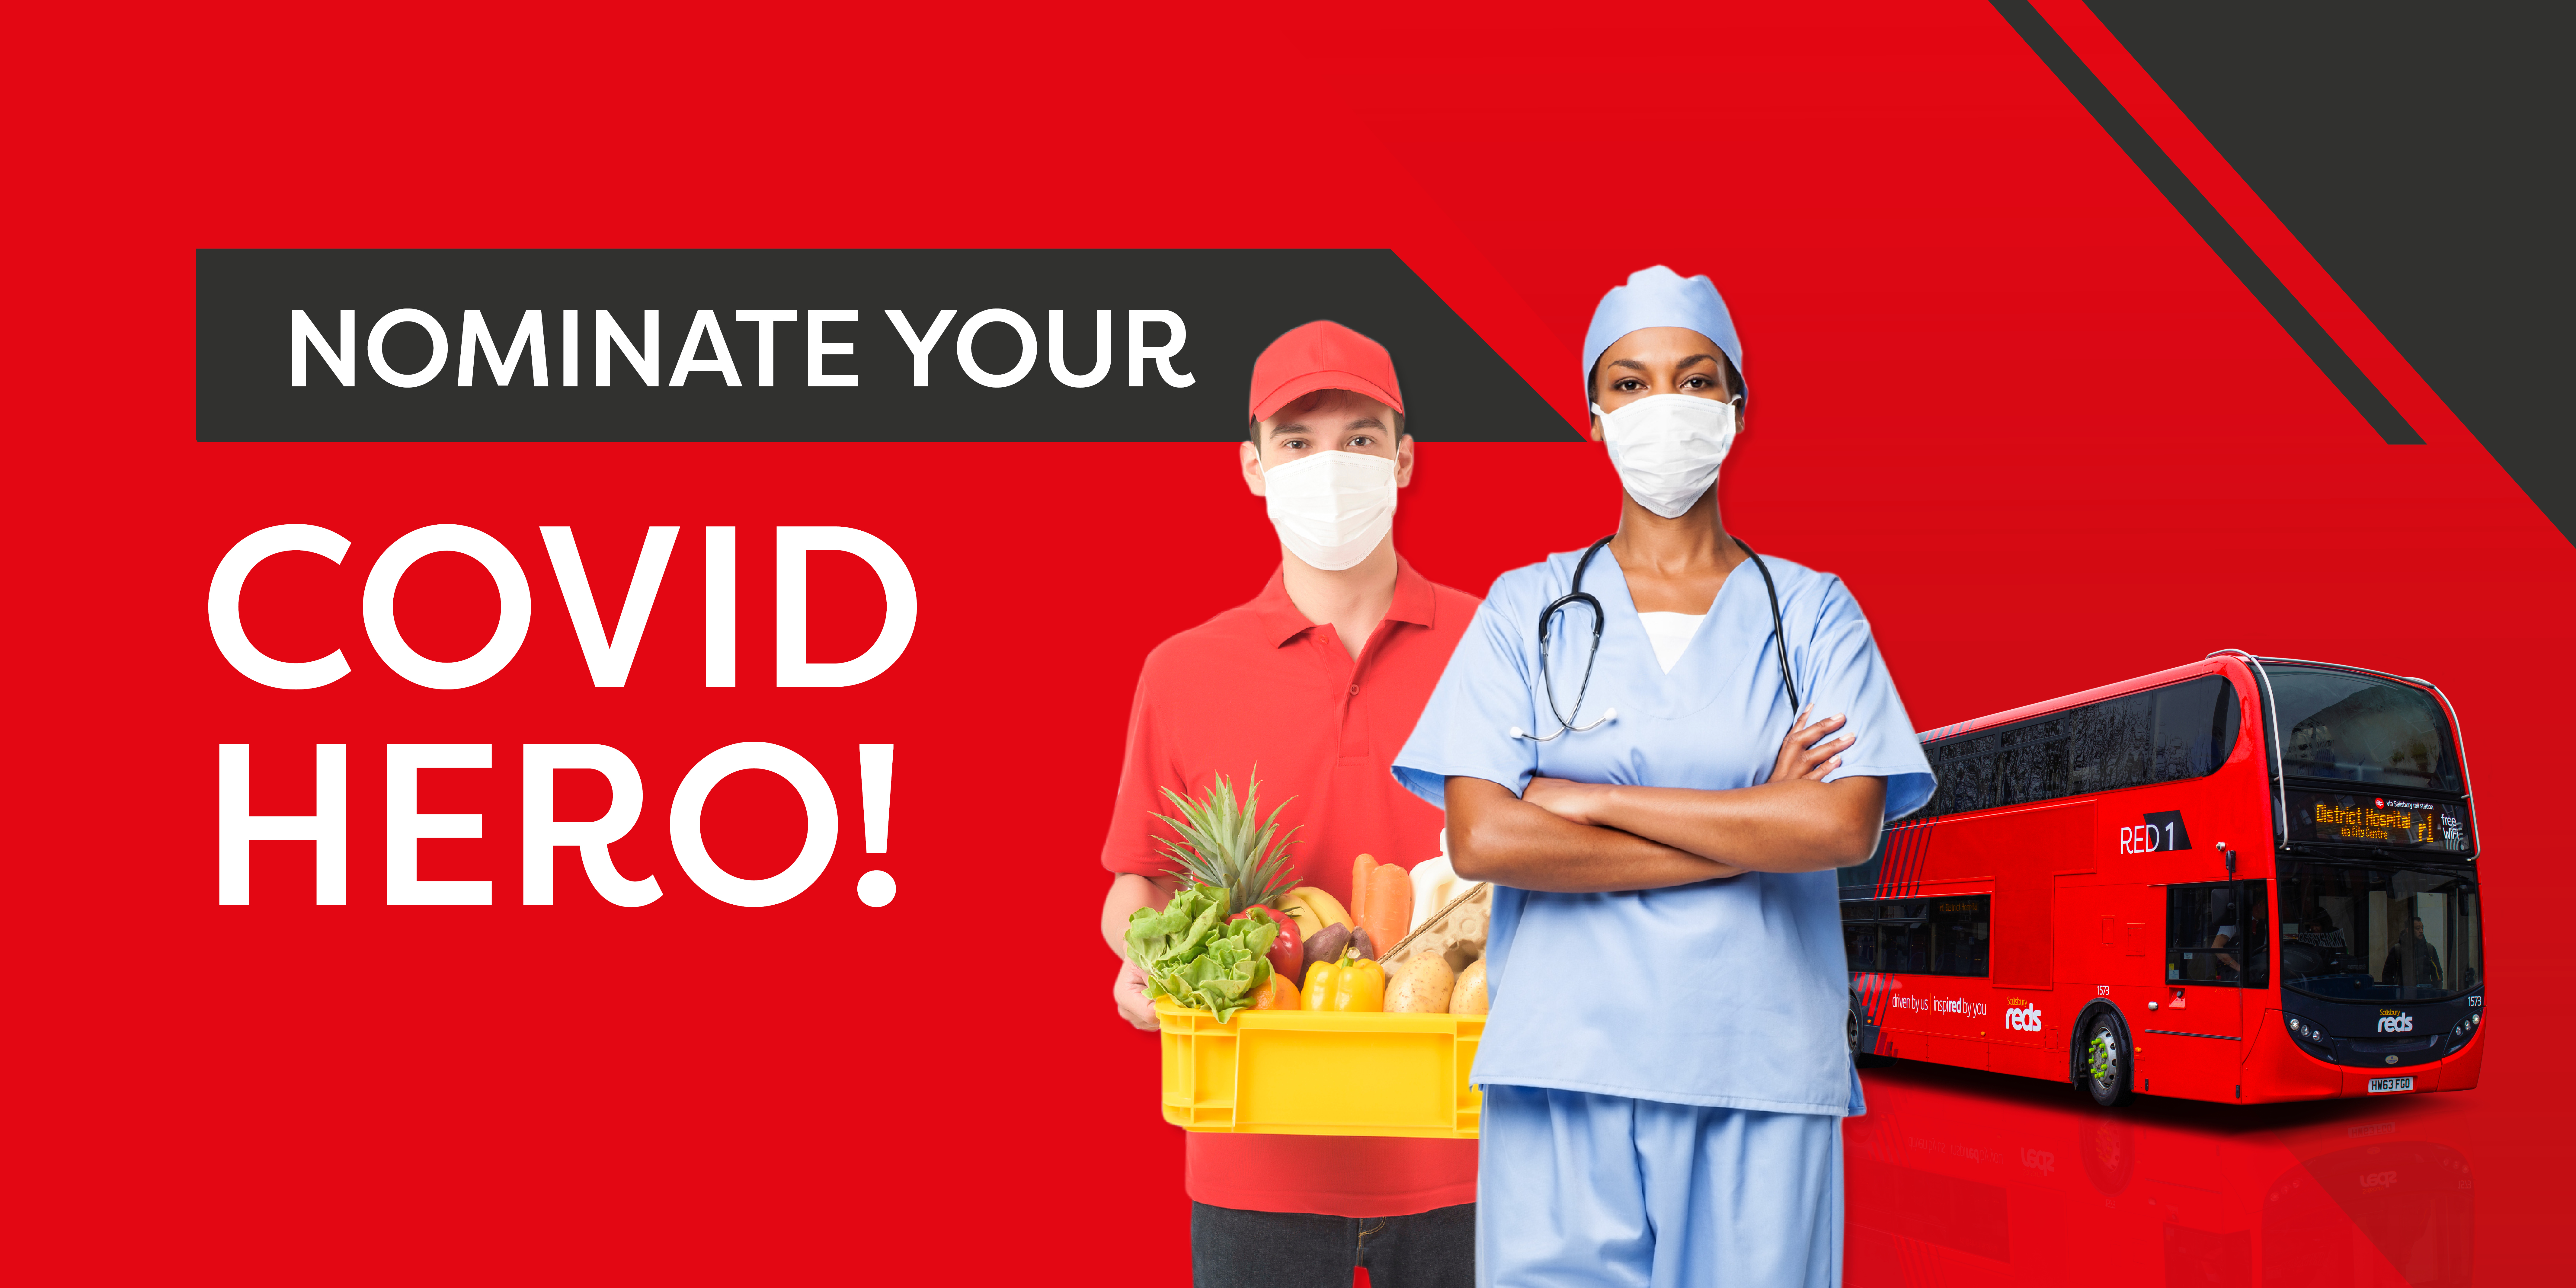 Image of a Salisbury Reds bus with a nurse and food delivery personnel with text reading, 'nominate your covid hero!'